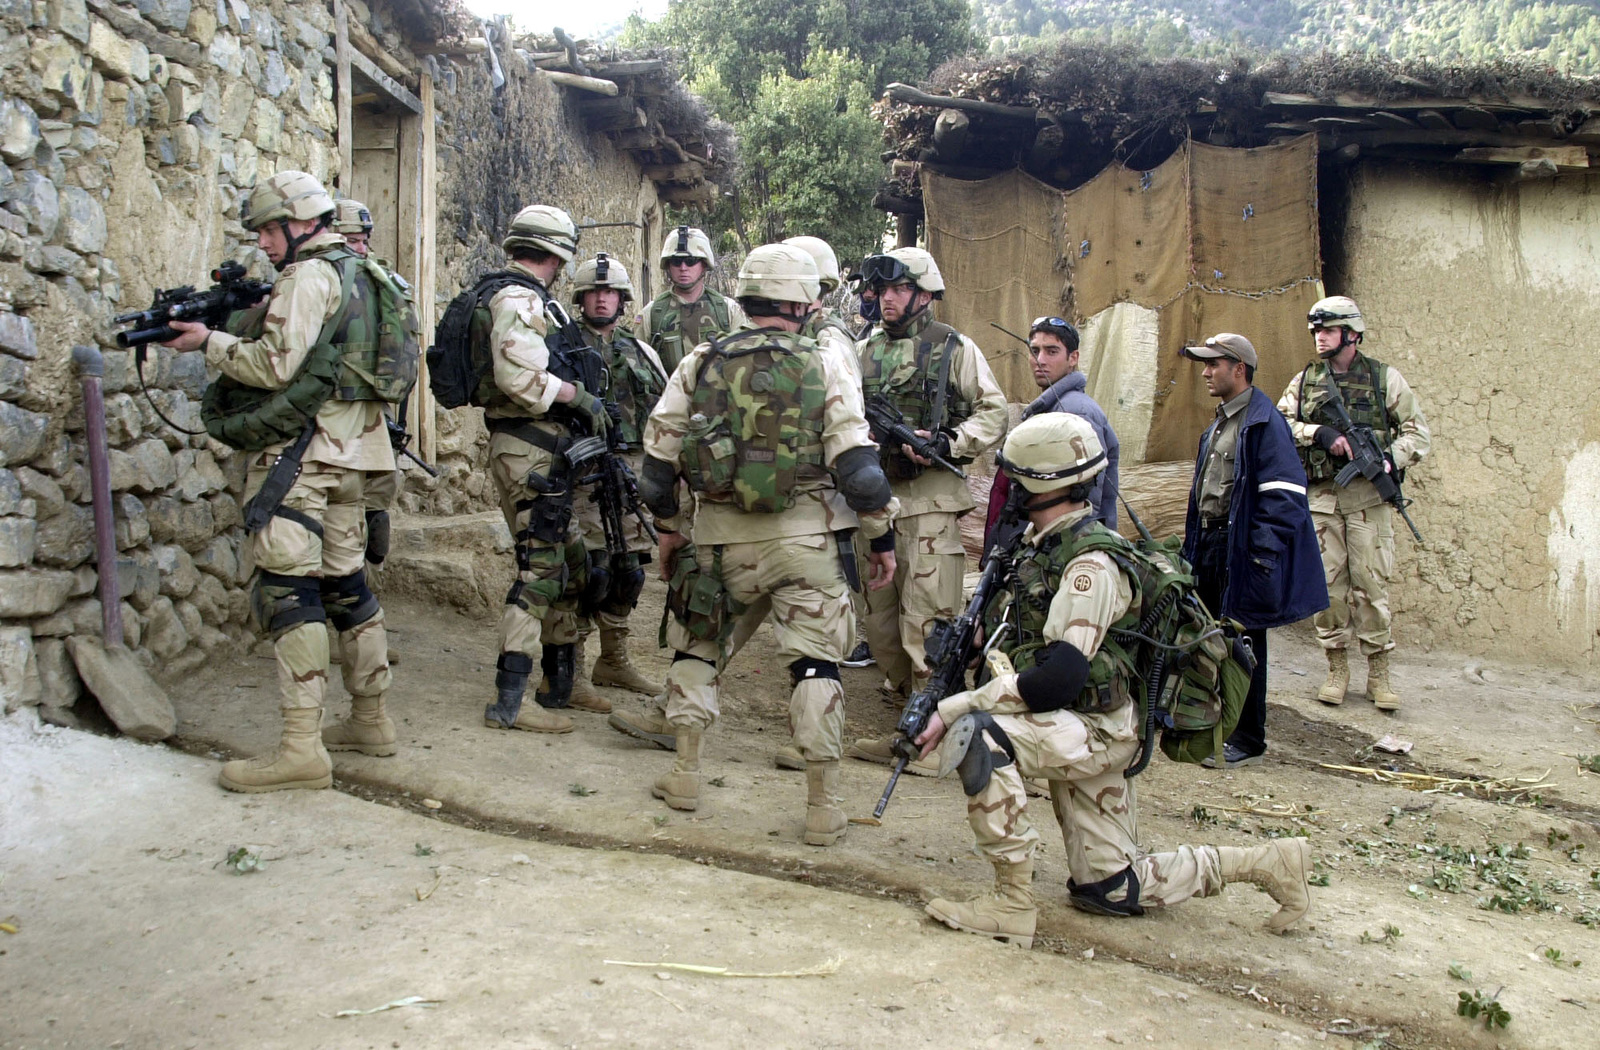 """Soldiers of """"C"""" Company, 1ST Battalion, 504th Parachute Infantry Regiment (PIR), armed with 5.56mm M4 Carbines and equipped with interceptor body armor, knee pads, use tactical satellite telephones, while conducting a search for suspected Taliban in the city of Naray, in support of ENDURING FREEDOM"""